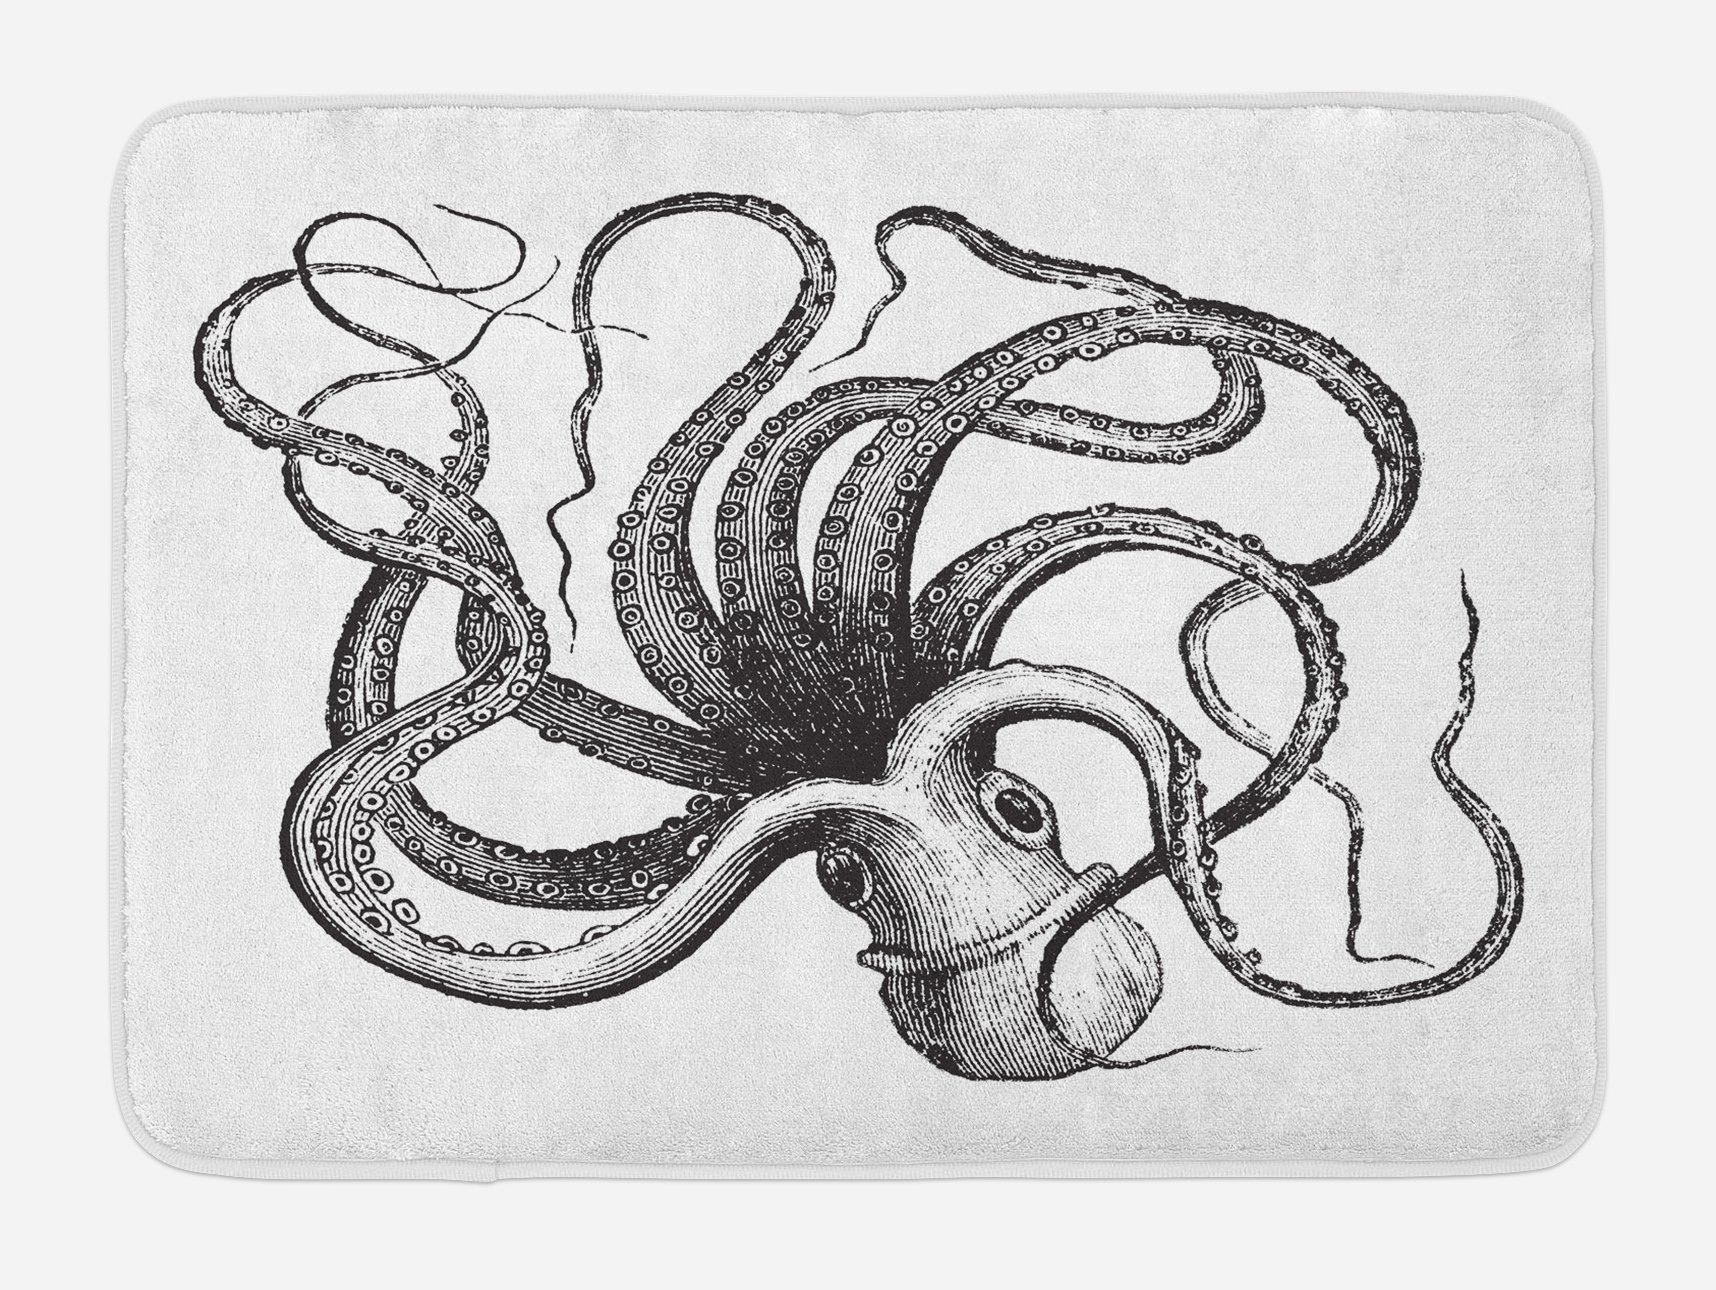 Lunarable Octopus Bath Mat, Monochrome Subaquatic Animal Illustration Hand Drawn Sketch Style Aquatic Life, Plush Bathroom Decor Mat with Non Slip Backing, 29.5 W X 17.5 W Inches, Black White